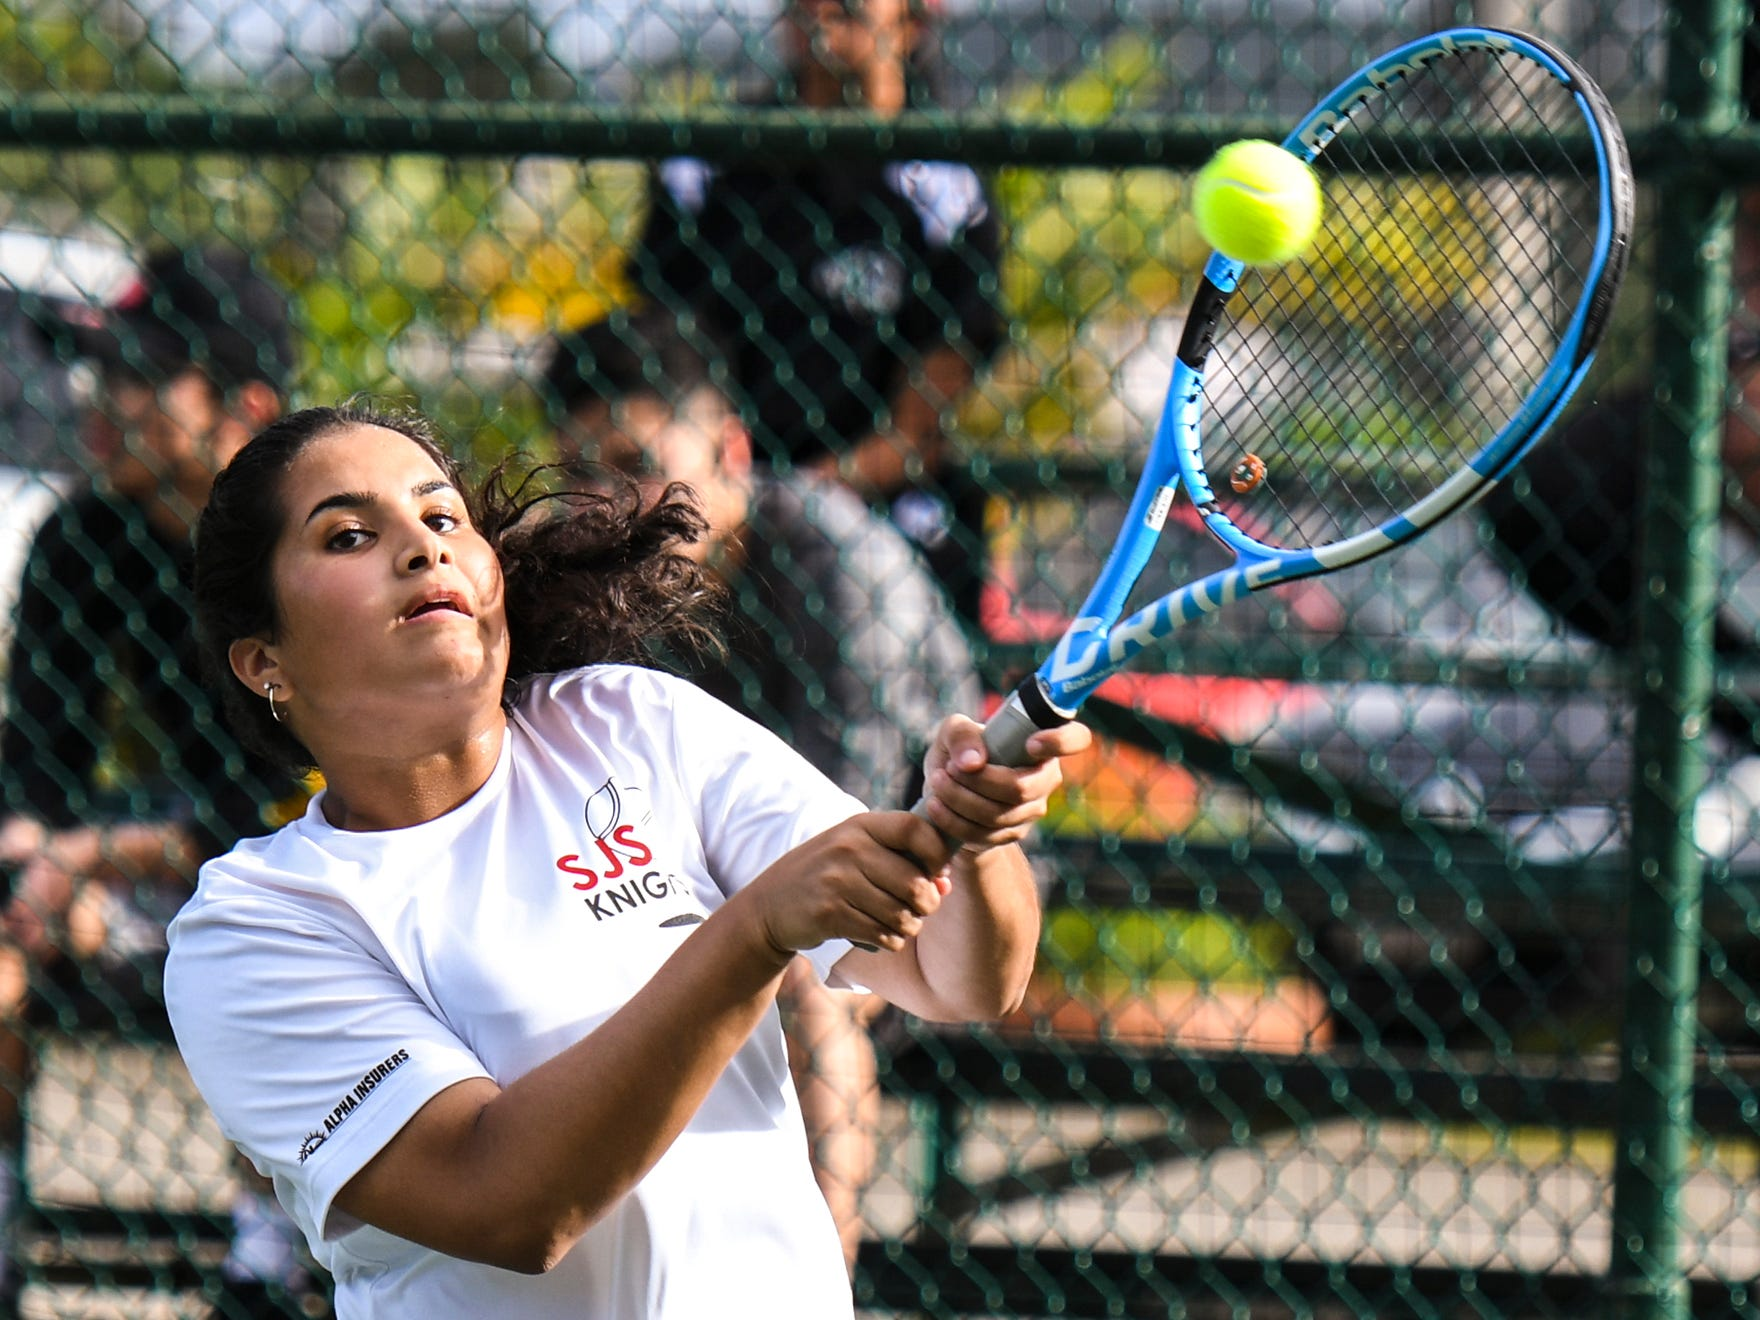 St. John's Knights' Anika Sachdev to her opponent, Academy of Our Lady Guam Cougars' Joycelyn Tenai, during their Interscholastic Athletic Association of Guam tennis singles match at the Rick Ninete Tennis Center in Hagåtna on Thursday, Jan. 31, 2019.